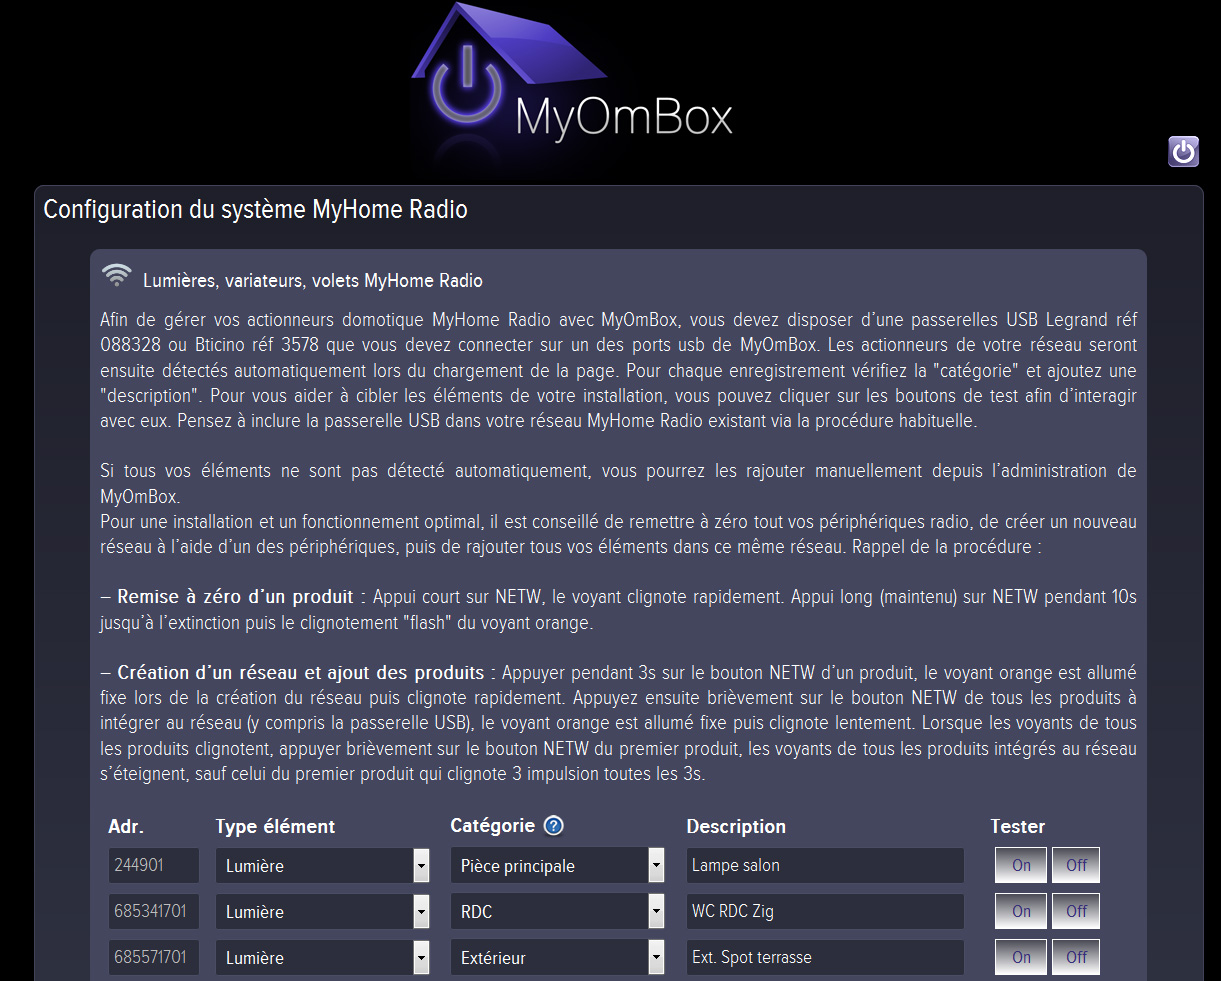 Configuration automatique avec détection myhome play radio